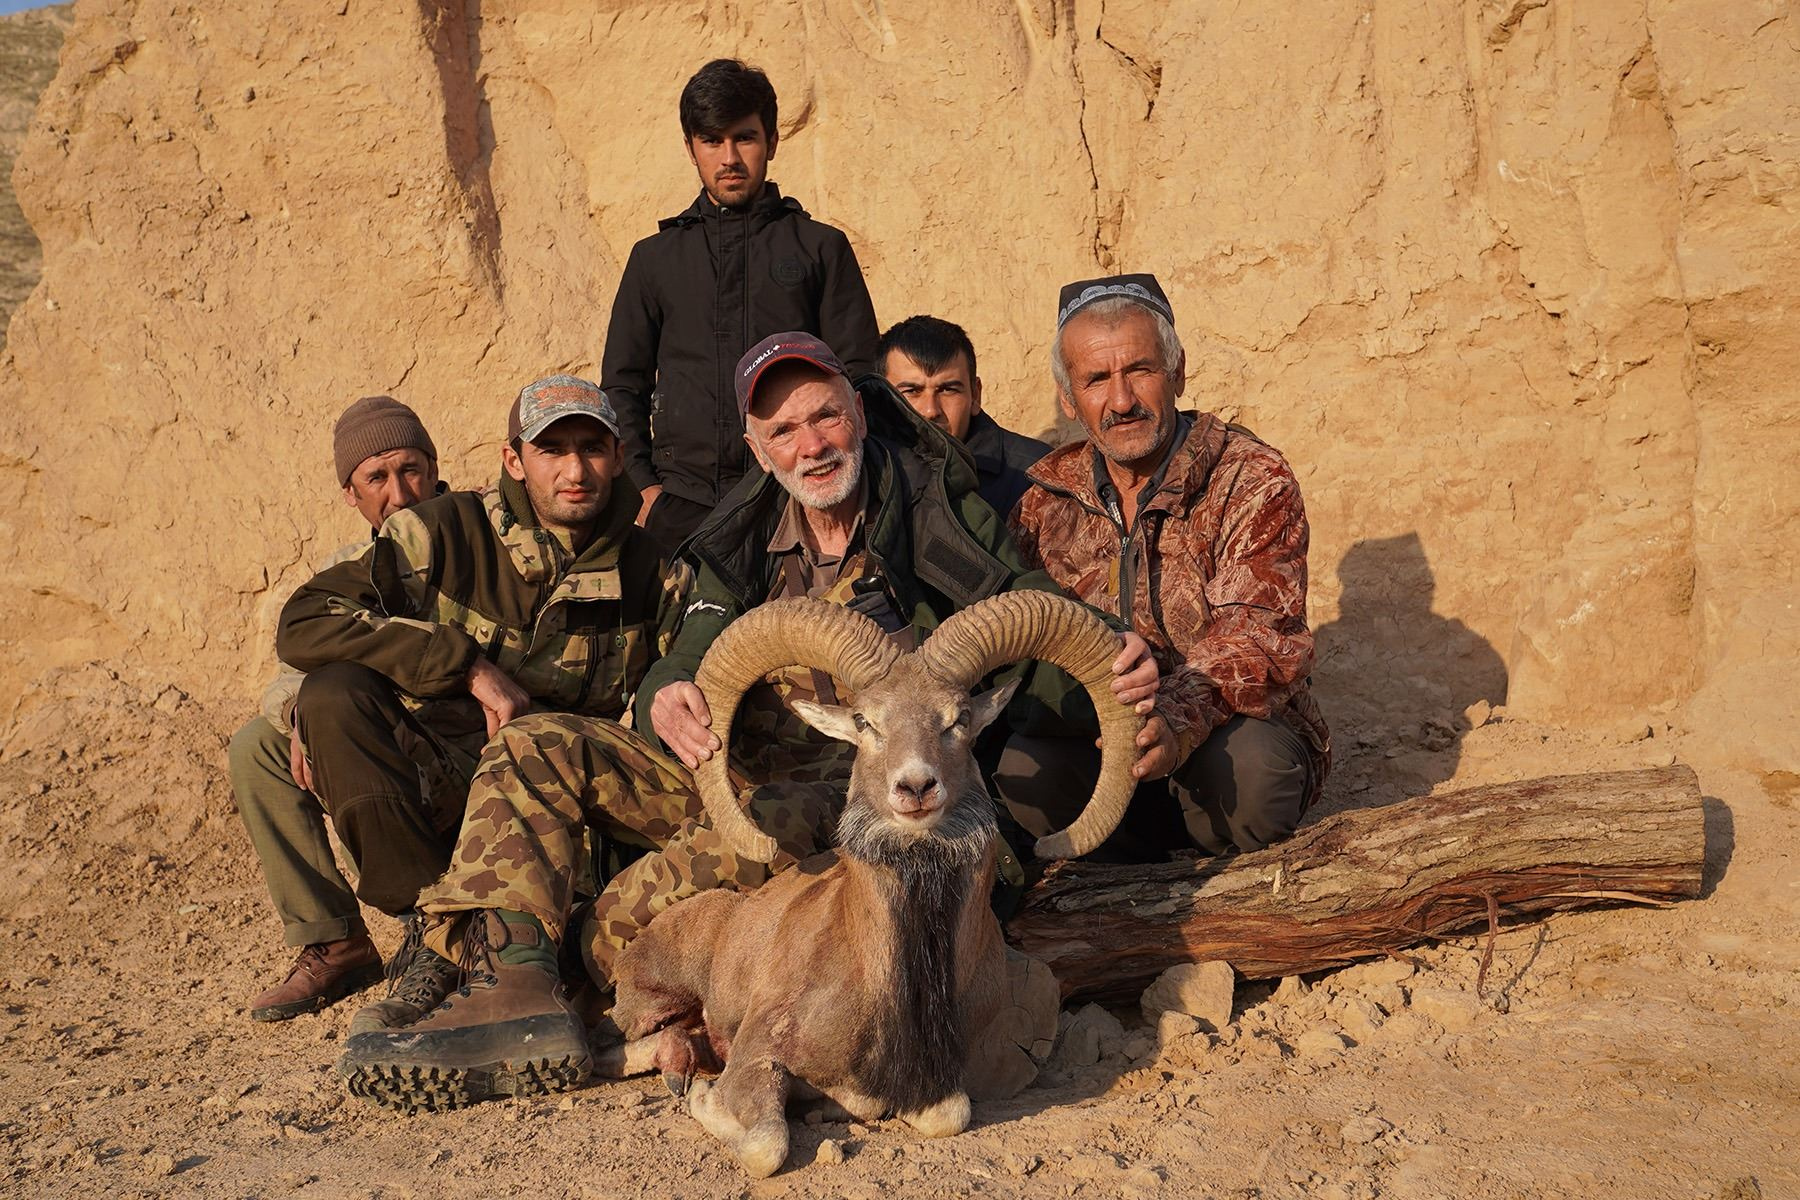 TAJIKISTAN URIAL CONSERVATION PERMIT  COMMITTEE OF THE ENVIRONMENTAL PROTECTION UNDER THE GOVERNMENT